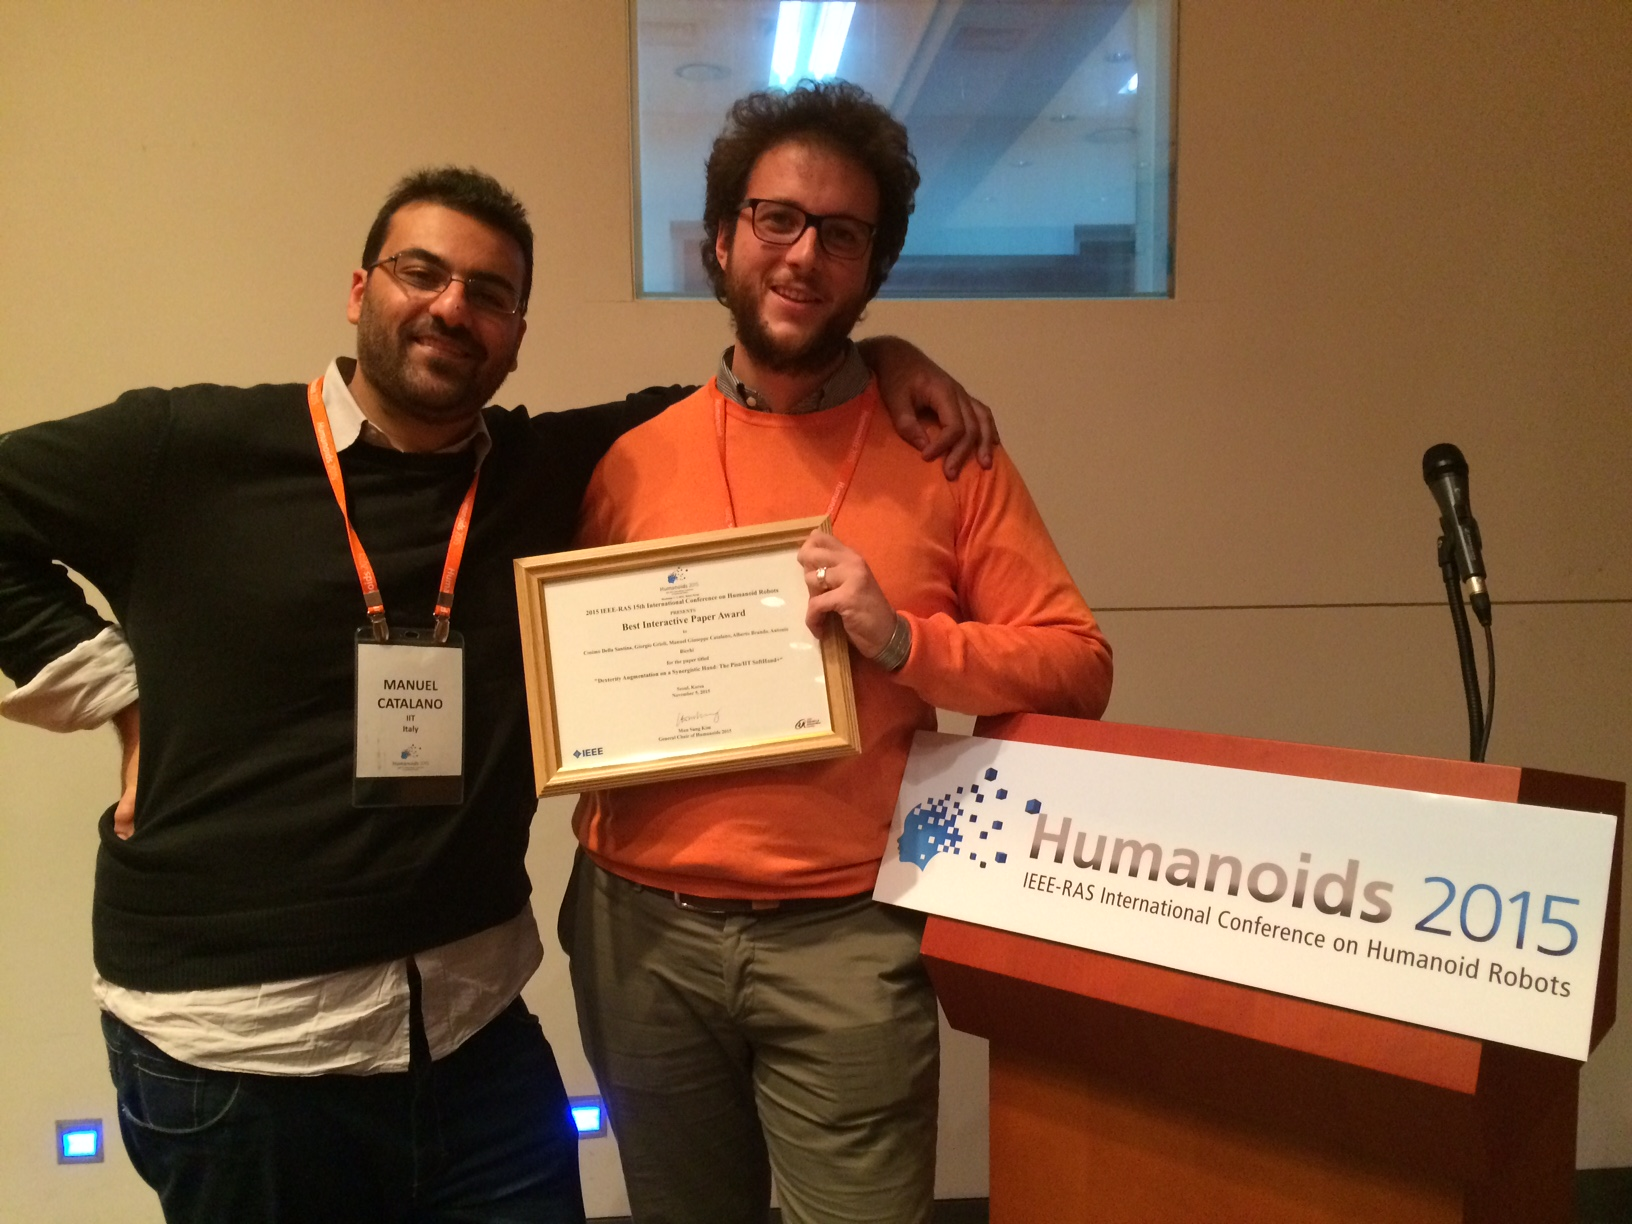 BEST INTERACTIVE PAPER AWARD AT HUMANOIDS 2015!